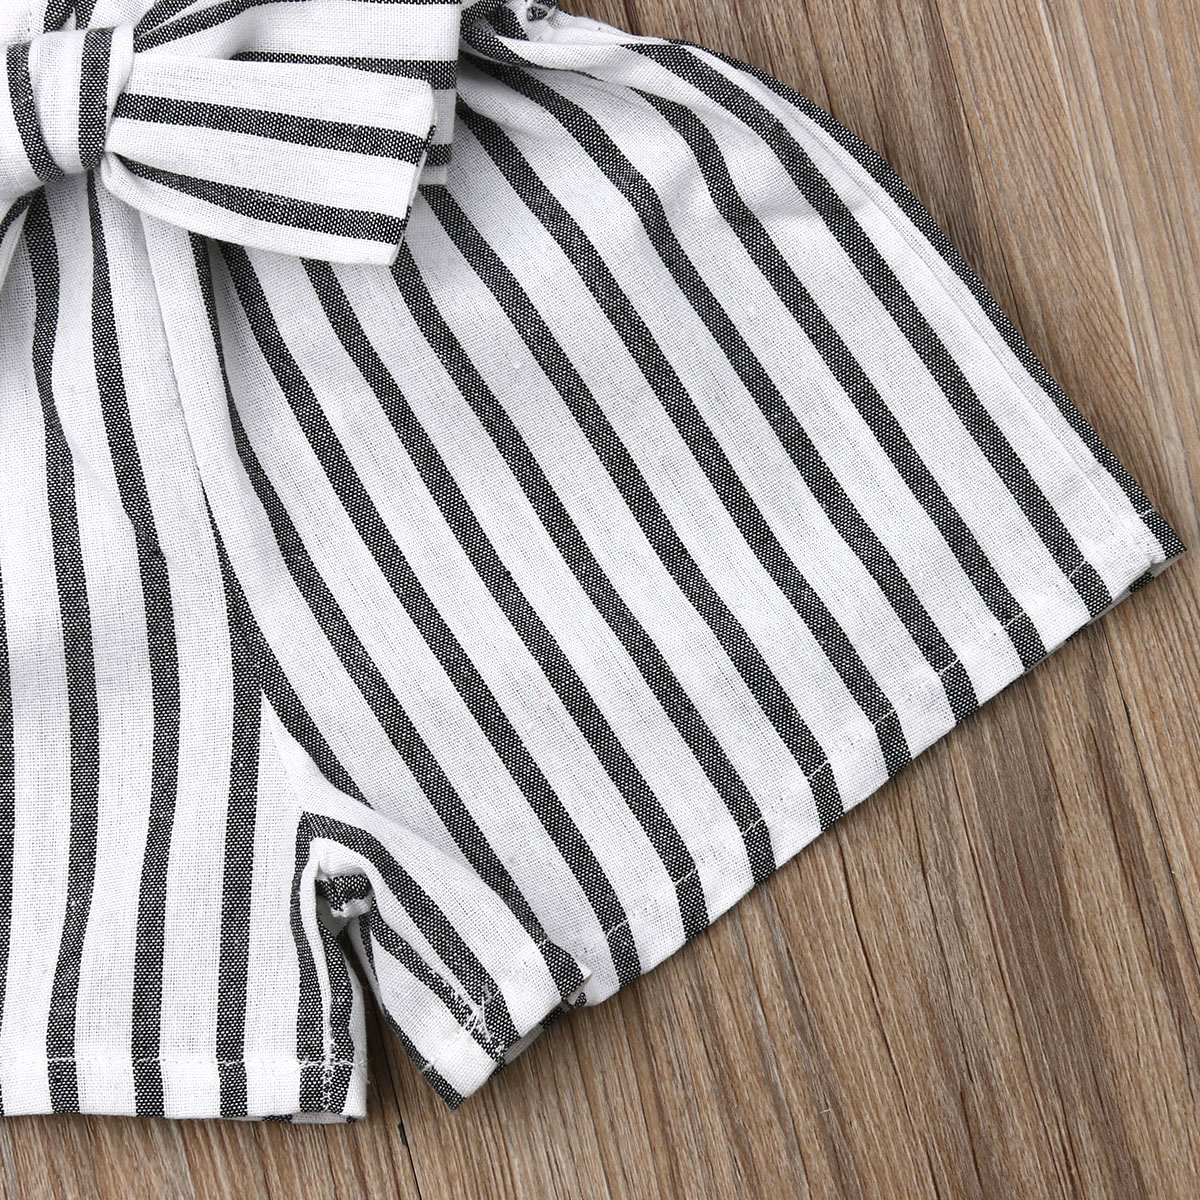 0 24M Newborn Toddler Baby Girl Sleeveless Striped Bowknot V Neck Romper Strappy Casual Cute Summer Sling Clothes Baby Playsuit in Rompers from Mother Kids